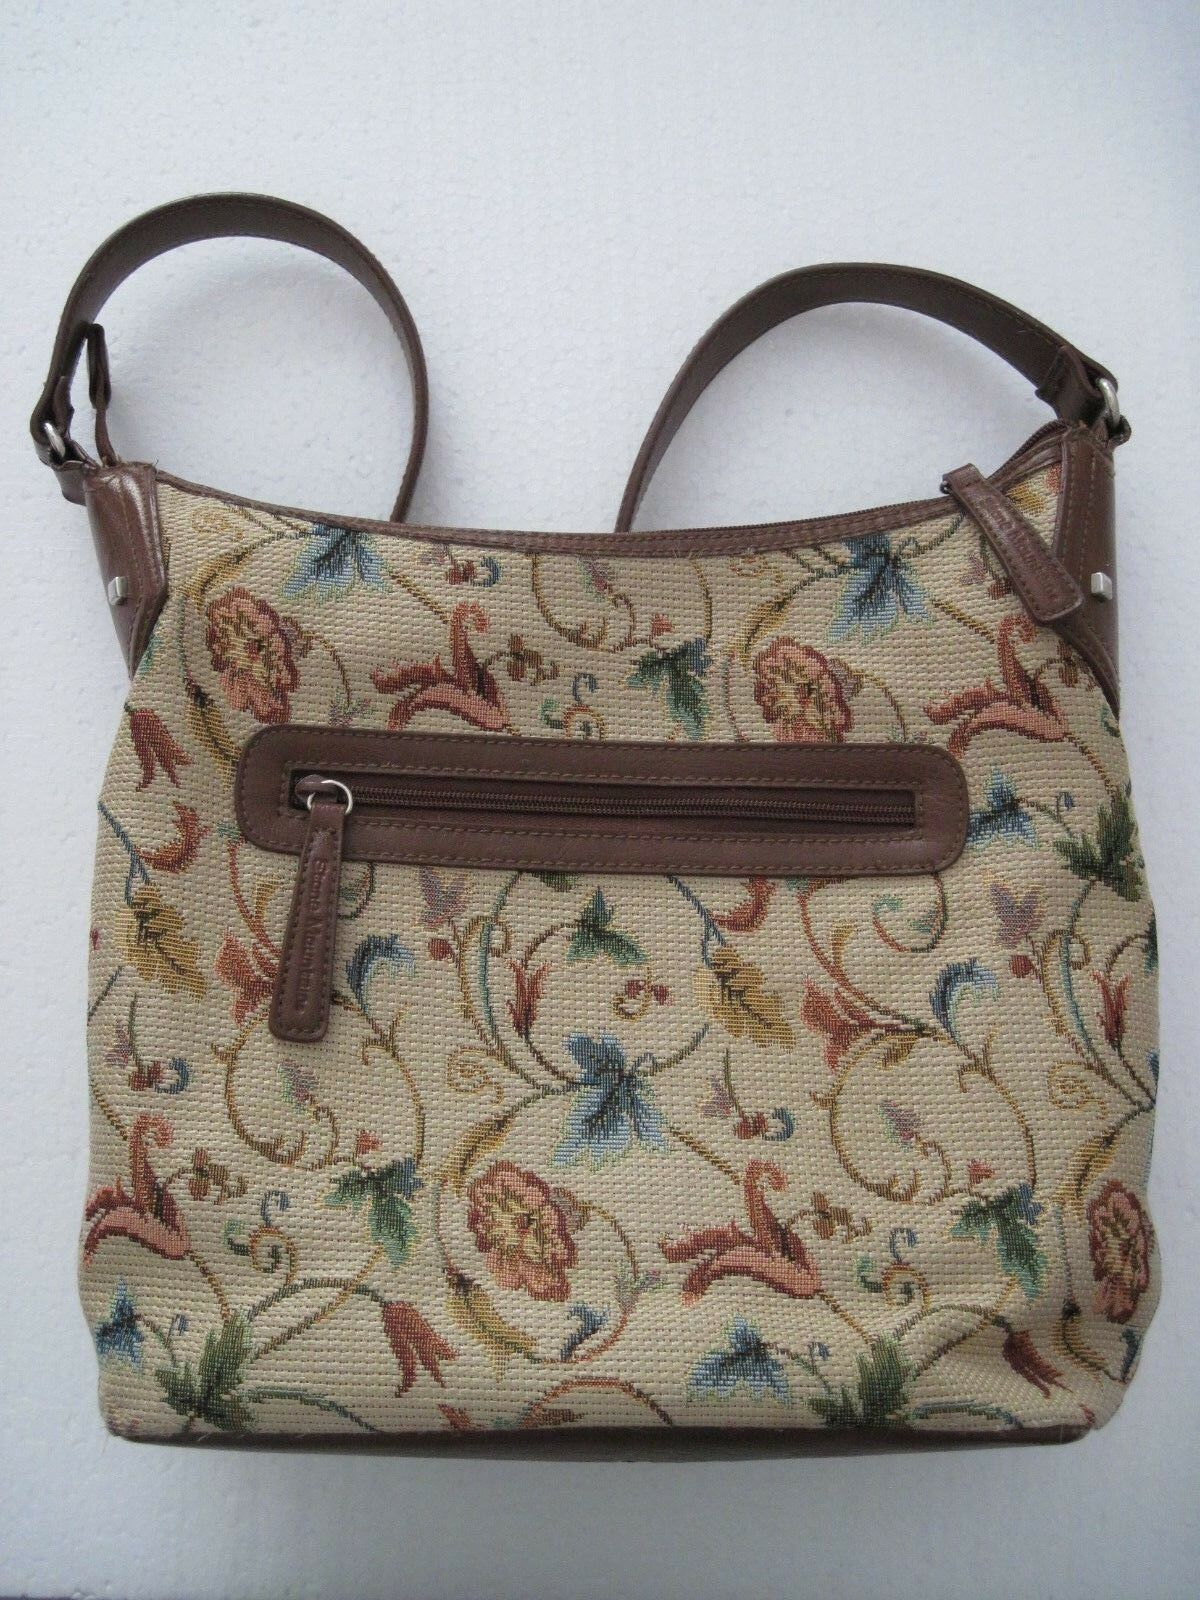 STONE MOUNTAIN tapestry and faux leather handbag, floral, 14